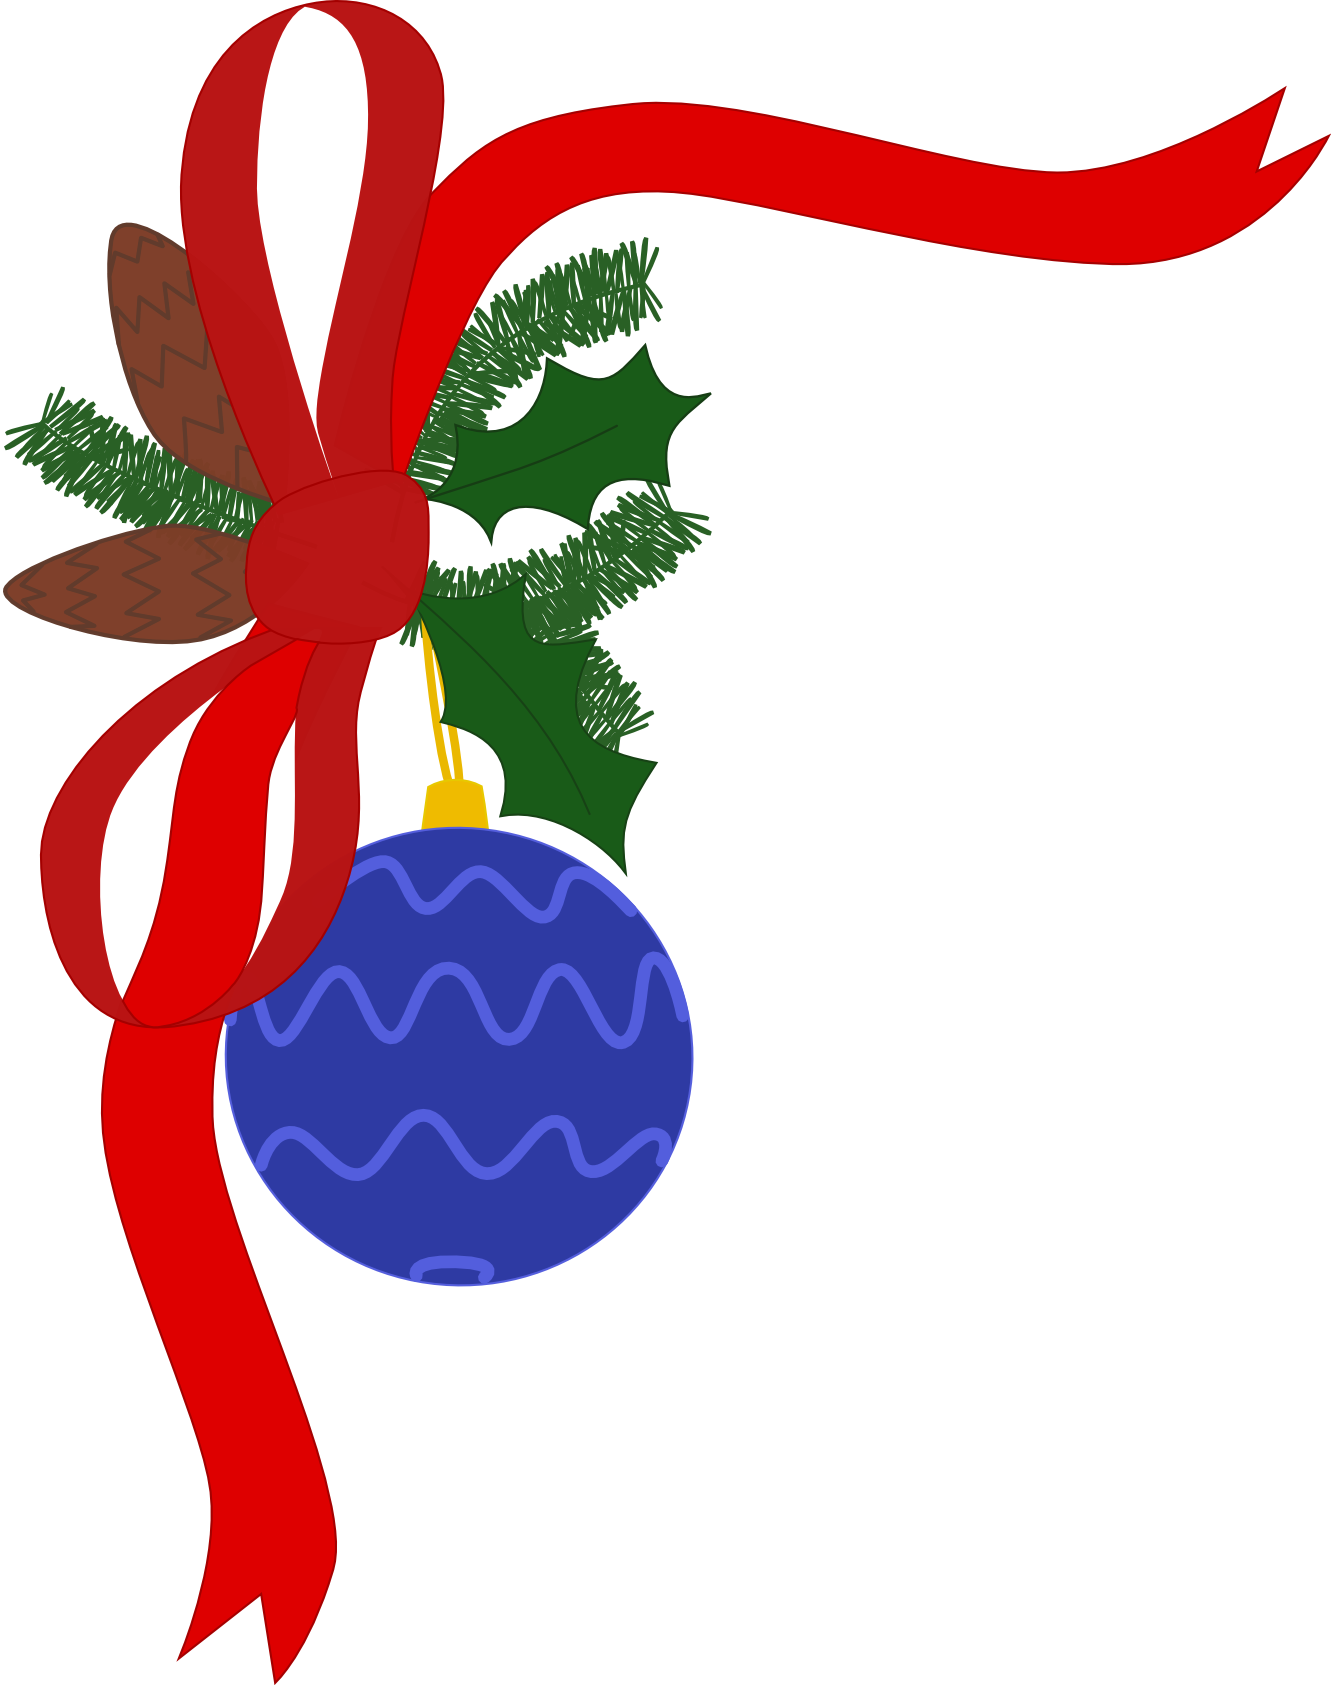 Christmas clip art borders png. Download clipart holiday x